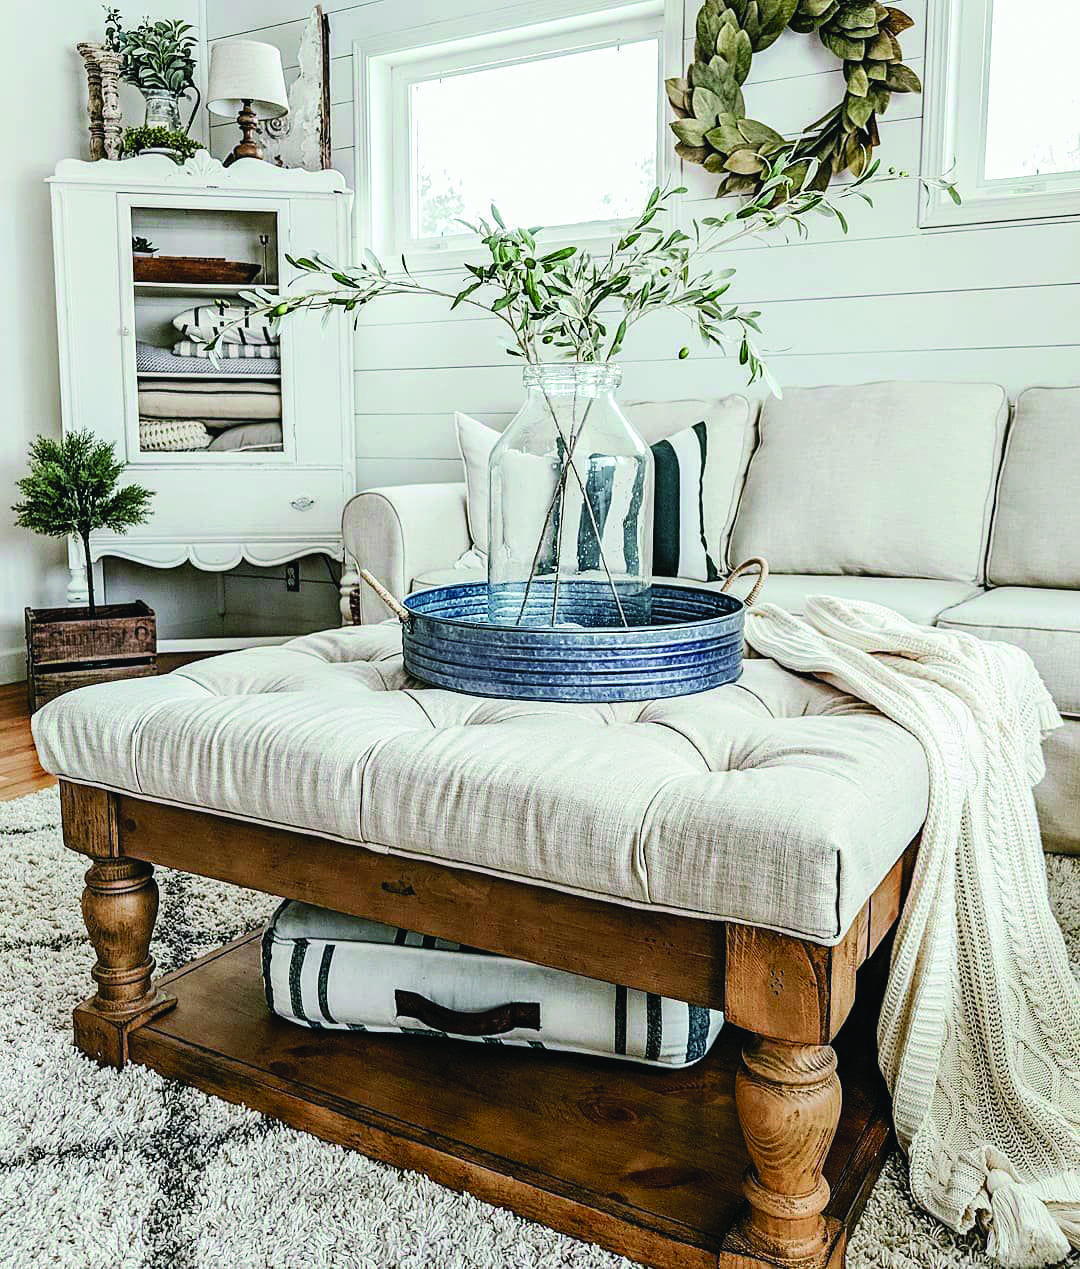 Cool And Contemporary Home Ohio Ottoman Coffee Table Chocolate And Oak Effect Only I Farm House Living Room French Country Living Room Ottoman In Living Room [ 1269 x 1080 Pixel ]